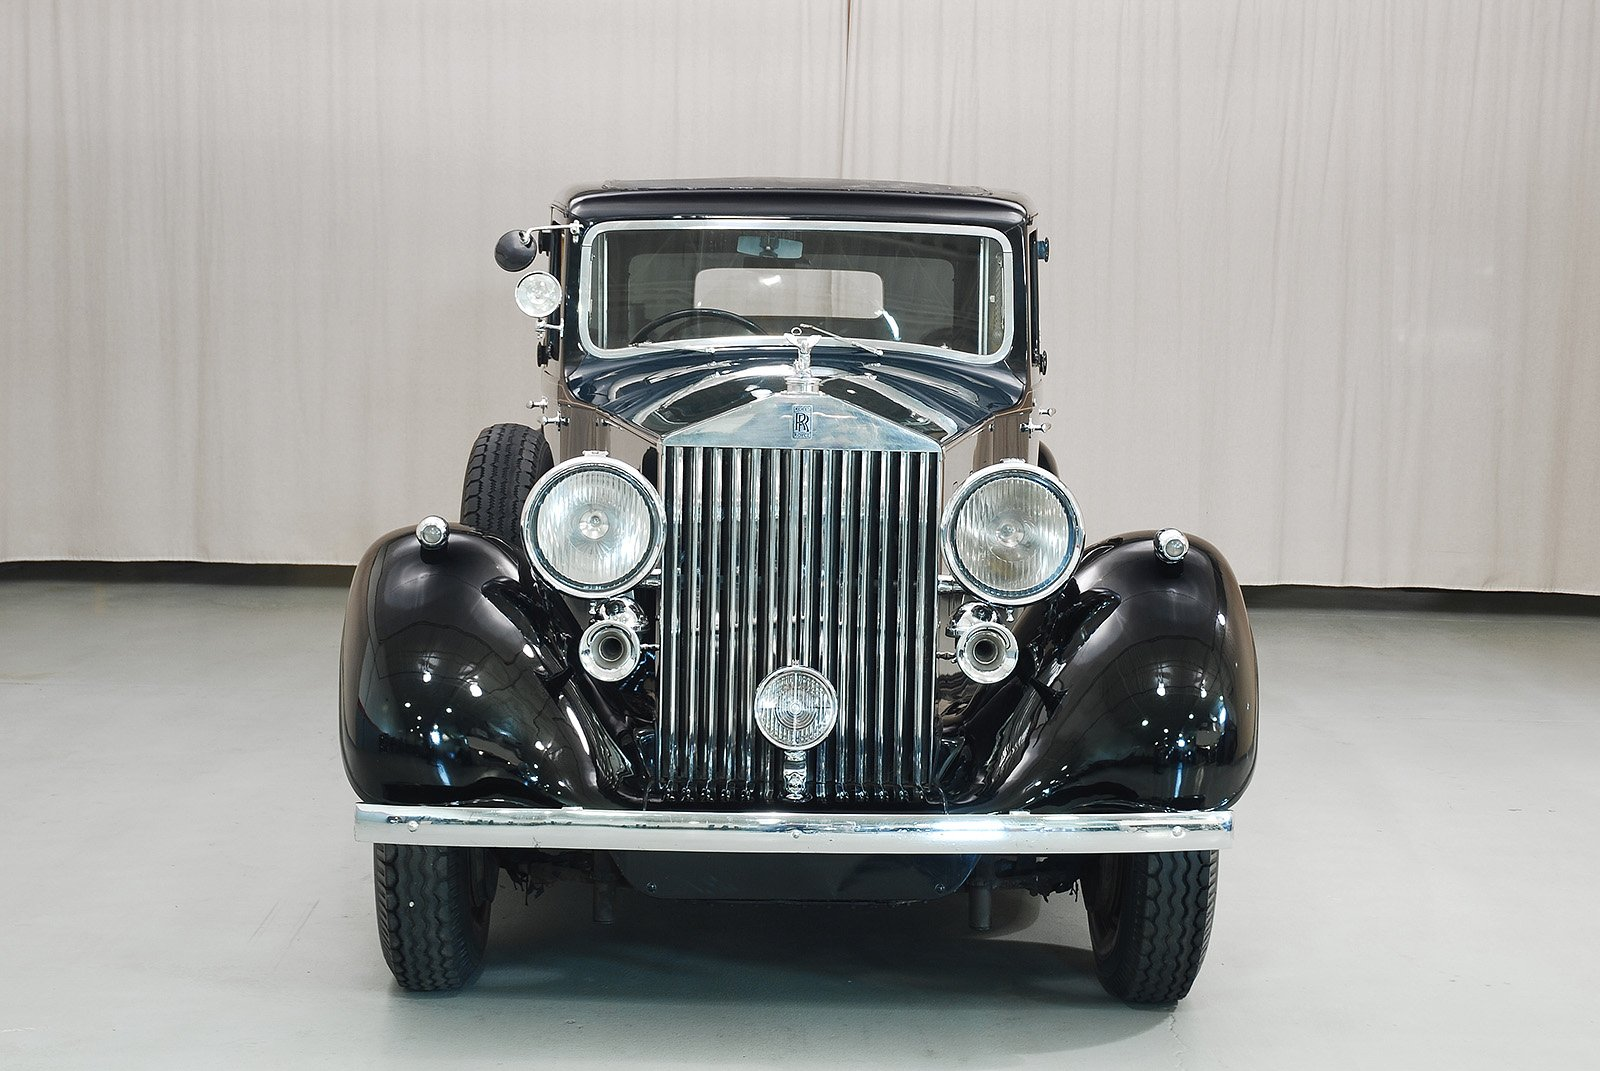 1936 rolls royce phantom iii limousine hyman ltd classic cars. Black Bedroom Furniture Sets. Home Design Ideas